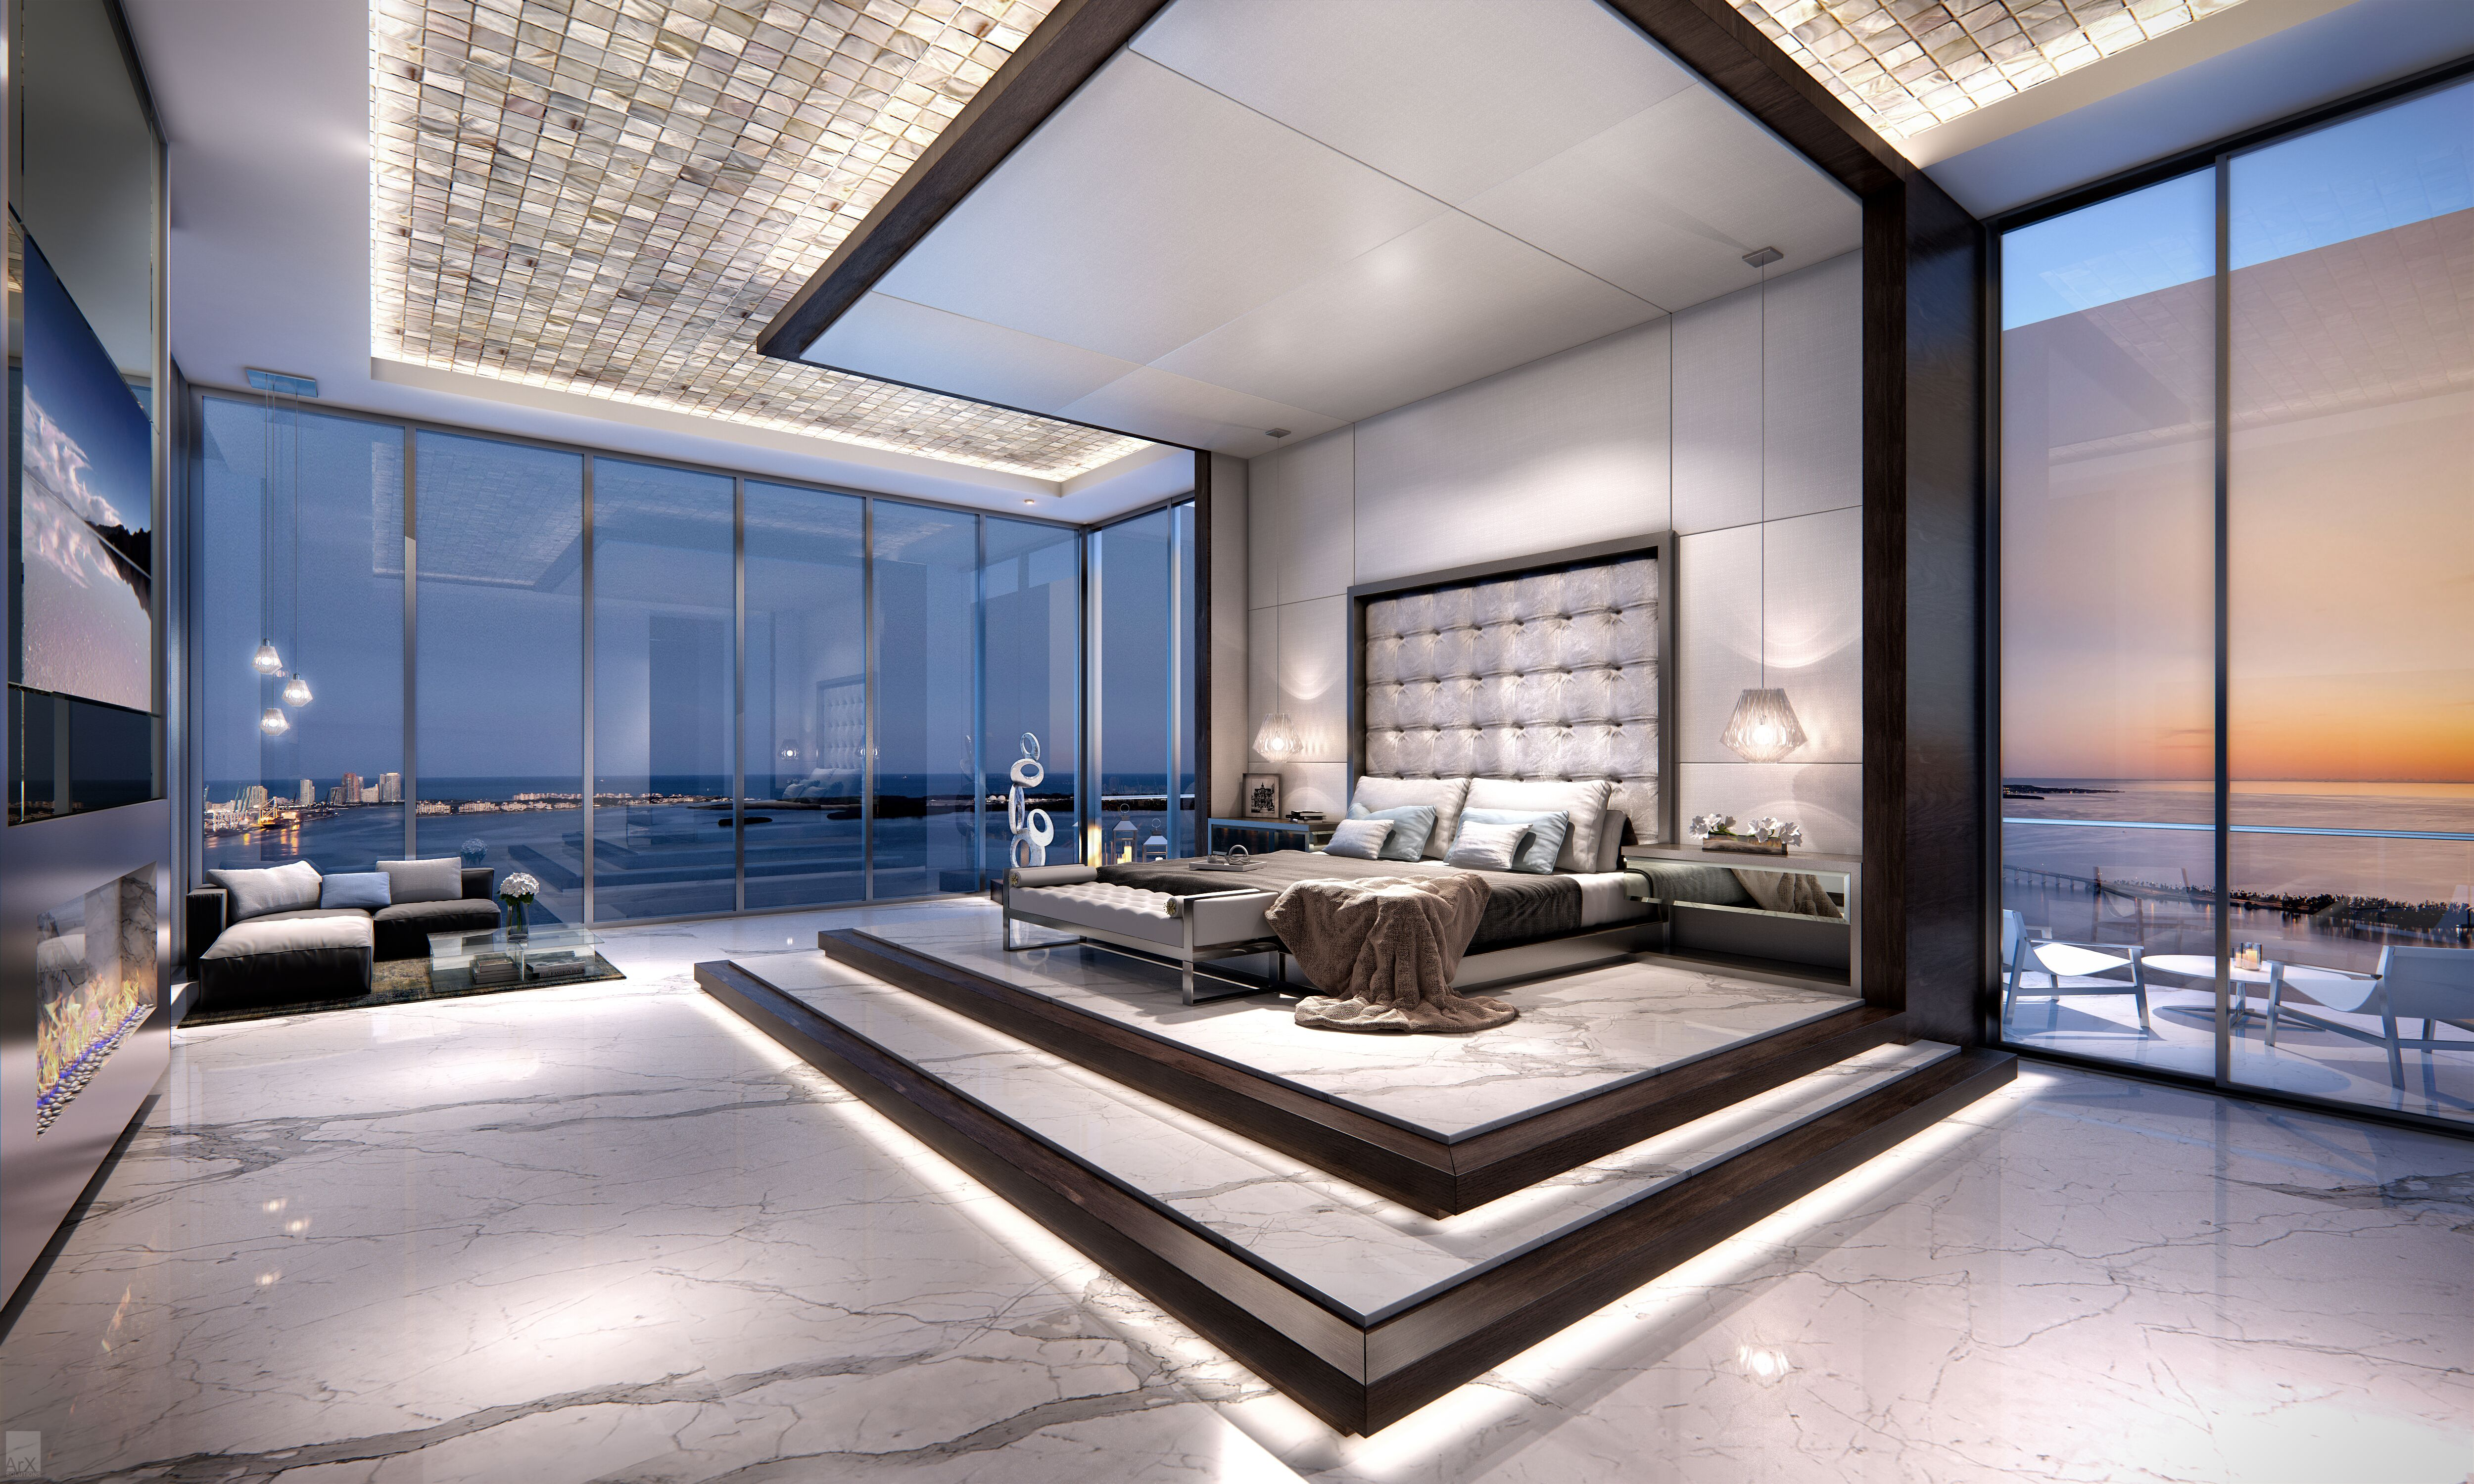 1451 Brickell Ave. PH1 | Miami, FL 33131 4 BR for sale, Brickell ...